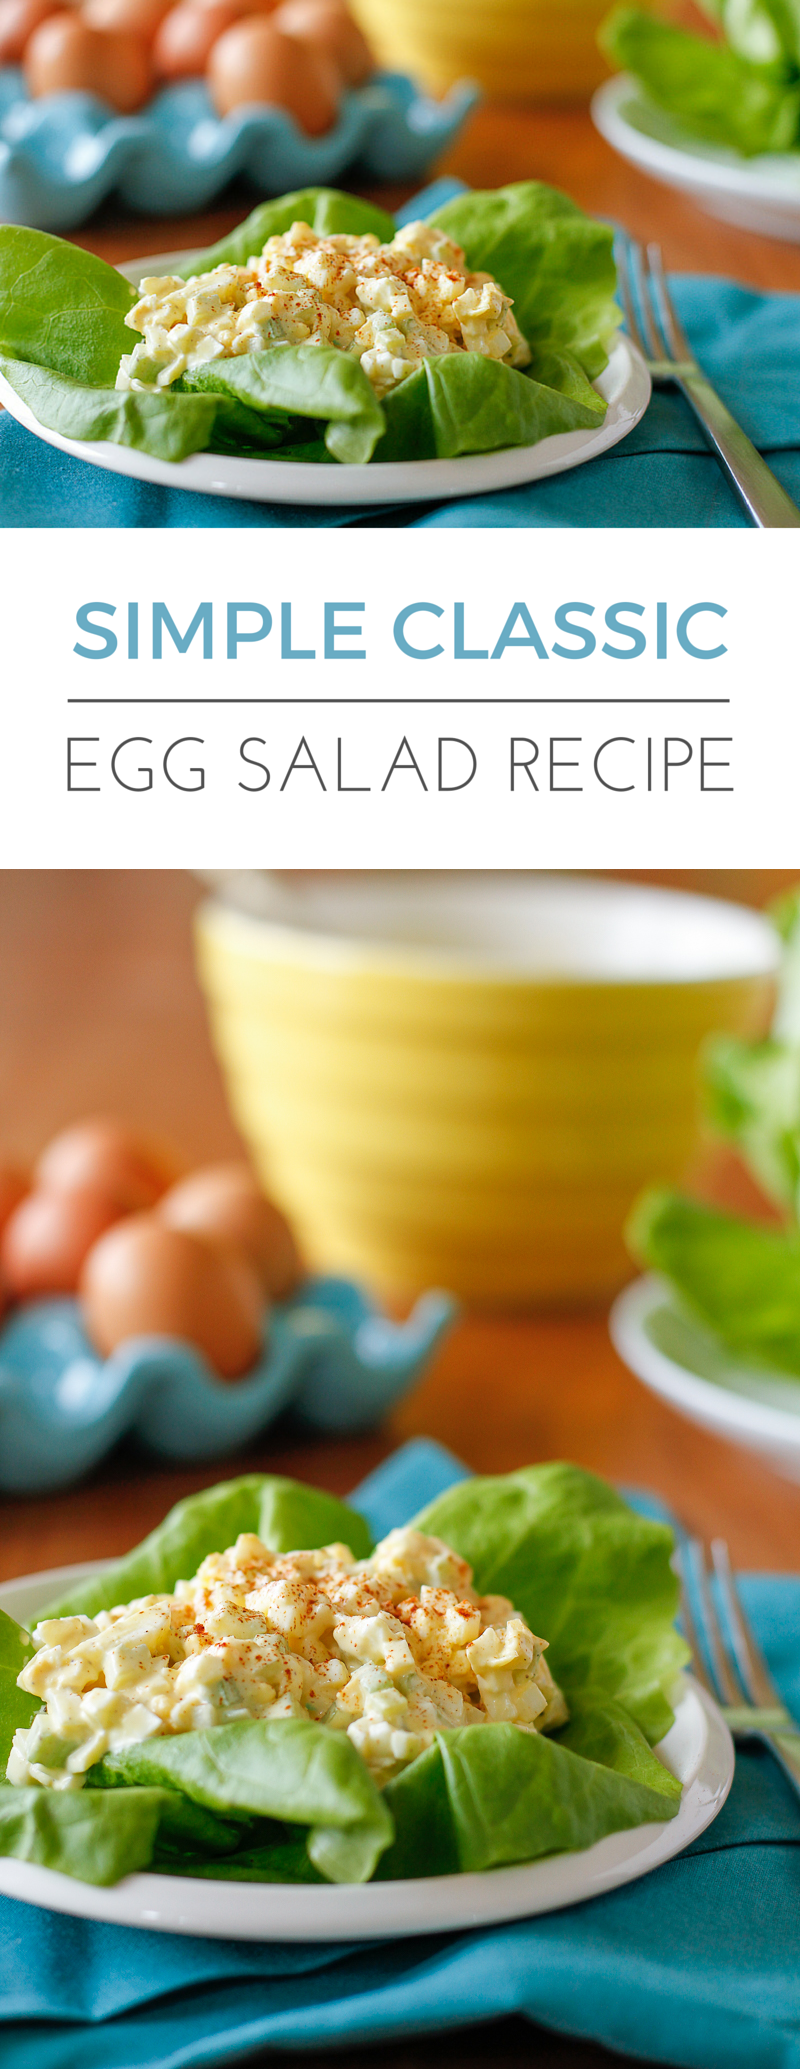 Egg Salad Recipe -- this delicious simple & classic egg salad recipe is the perfect way to use up an overabundance of hard-boiled eggs! | via @unsophisticook on unsophisticook.com